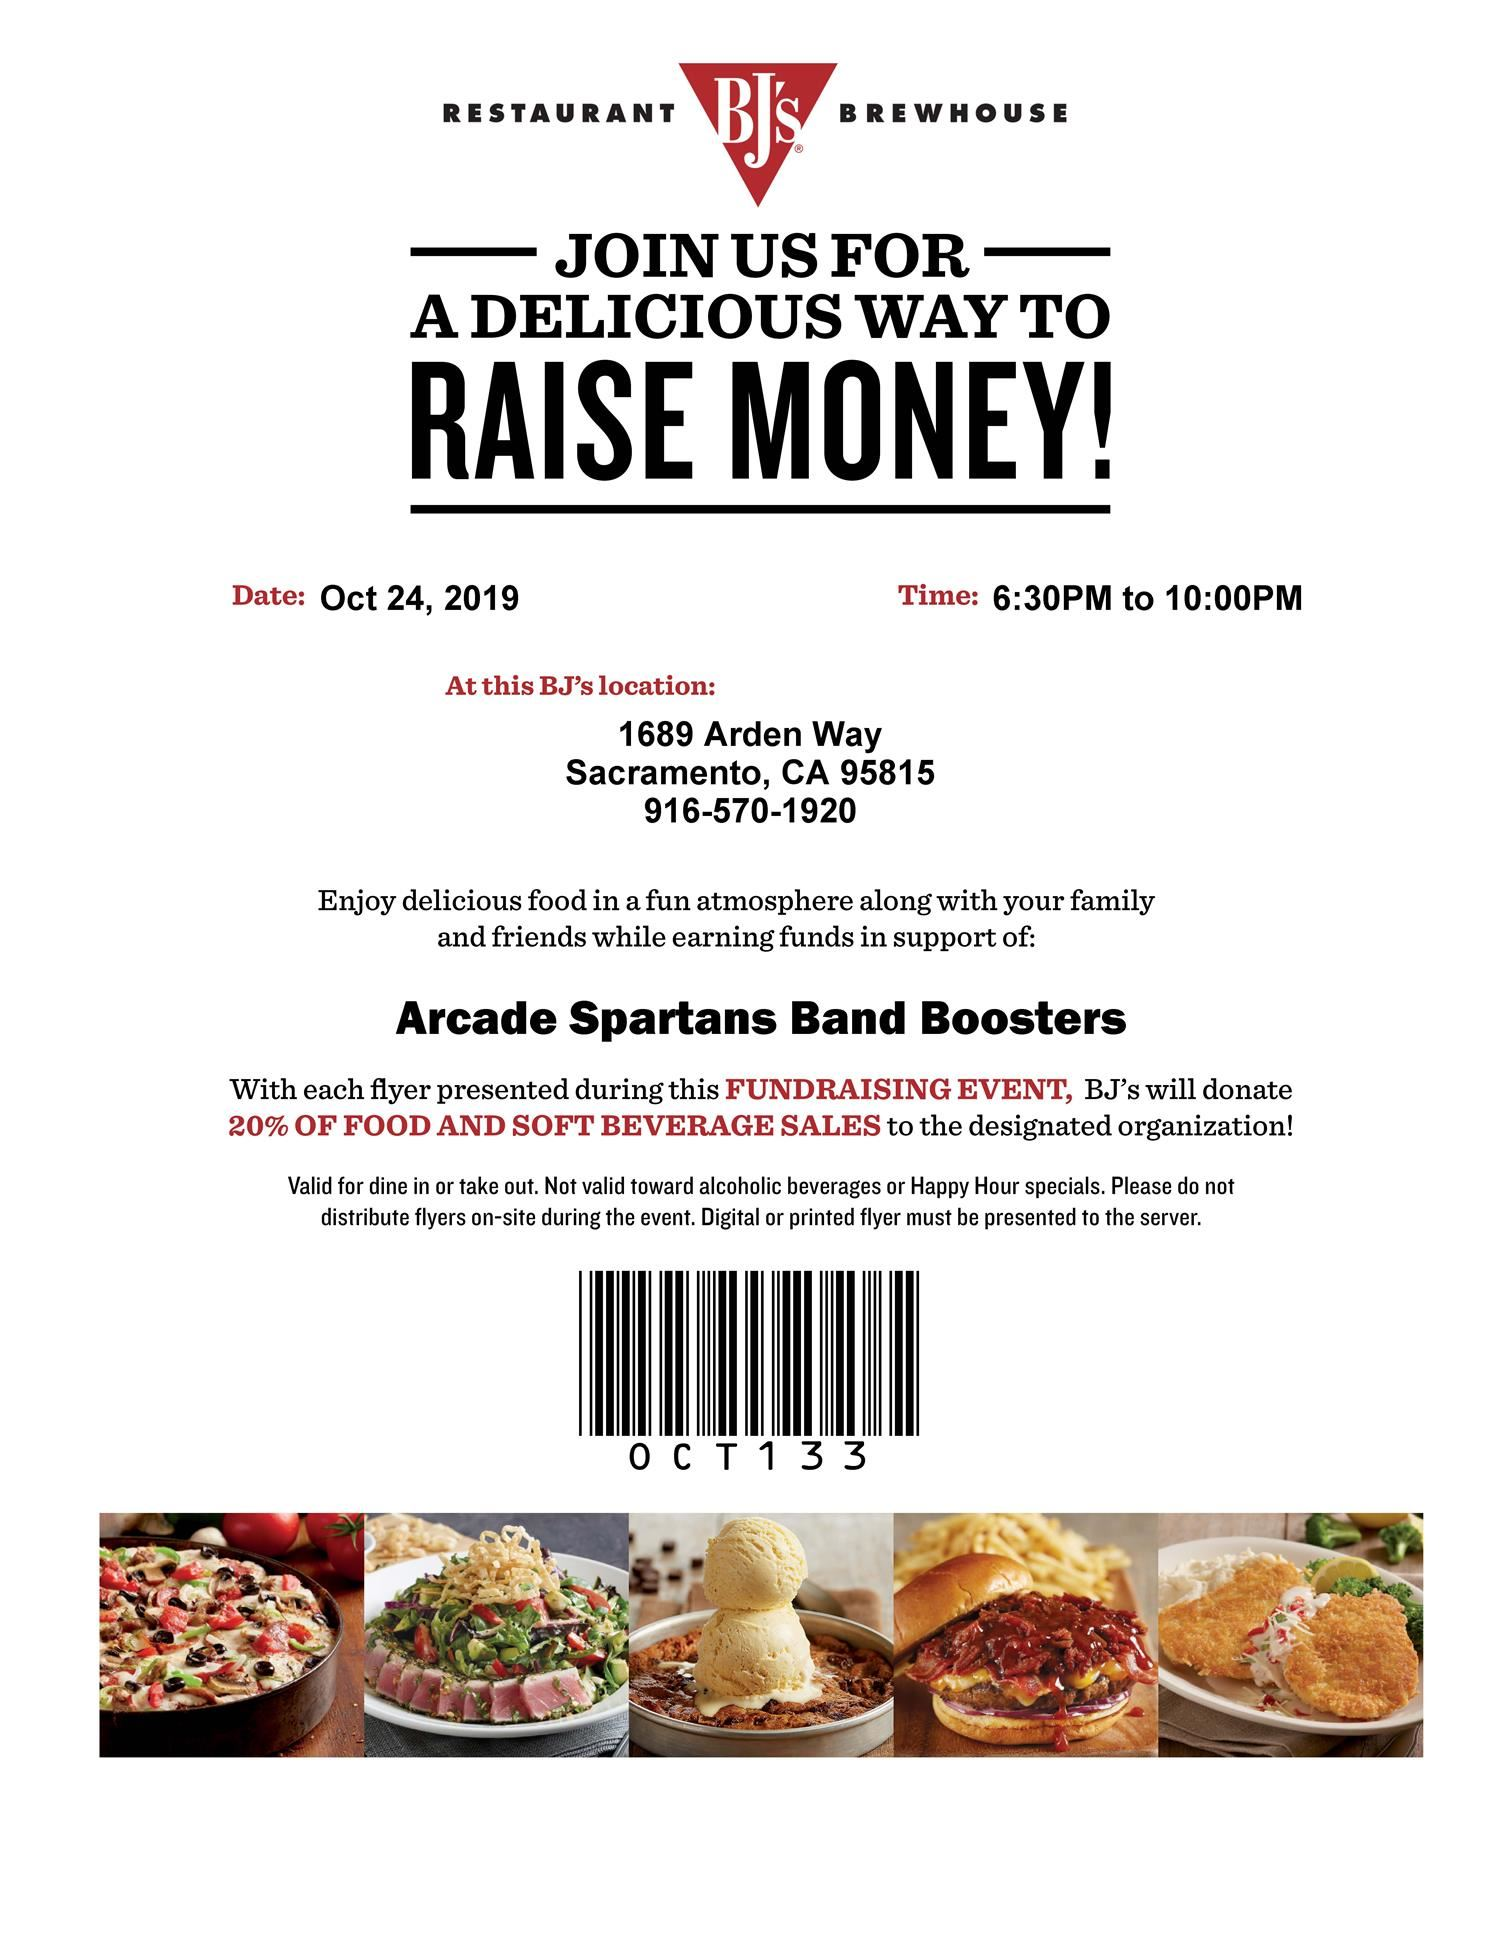 Arcade Spartans Band Booster Fundraising Event